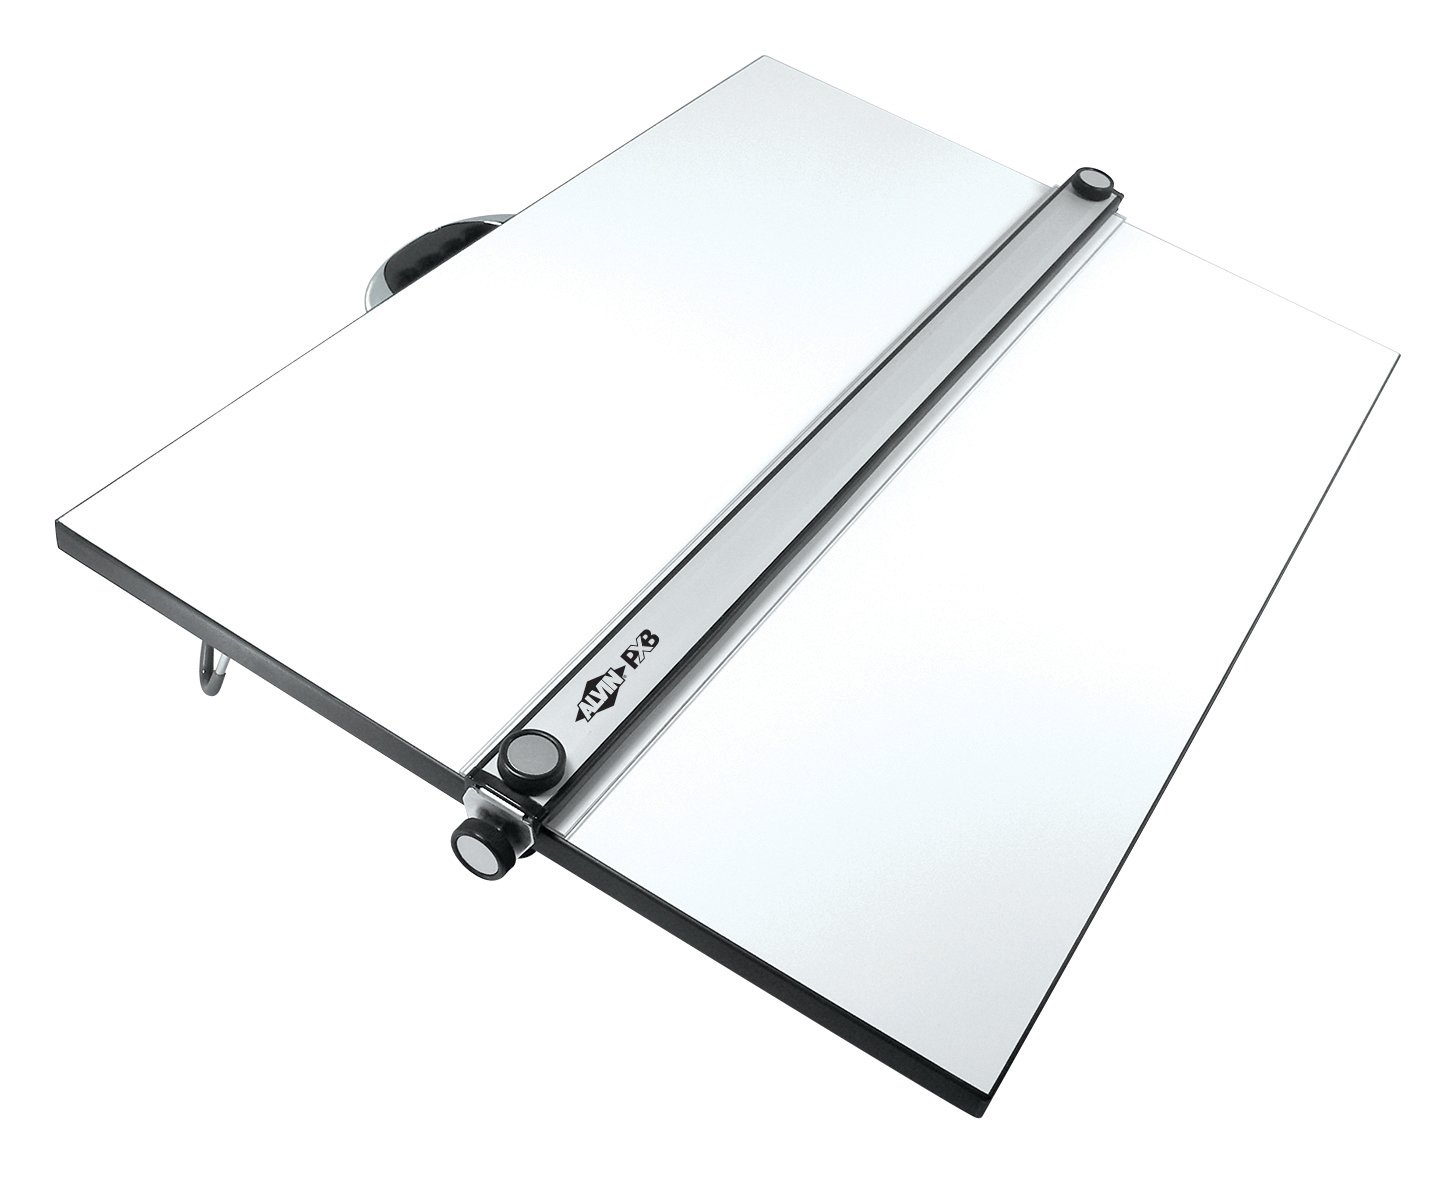 Alvin Portable Parallel Straightedge Board 20